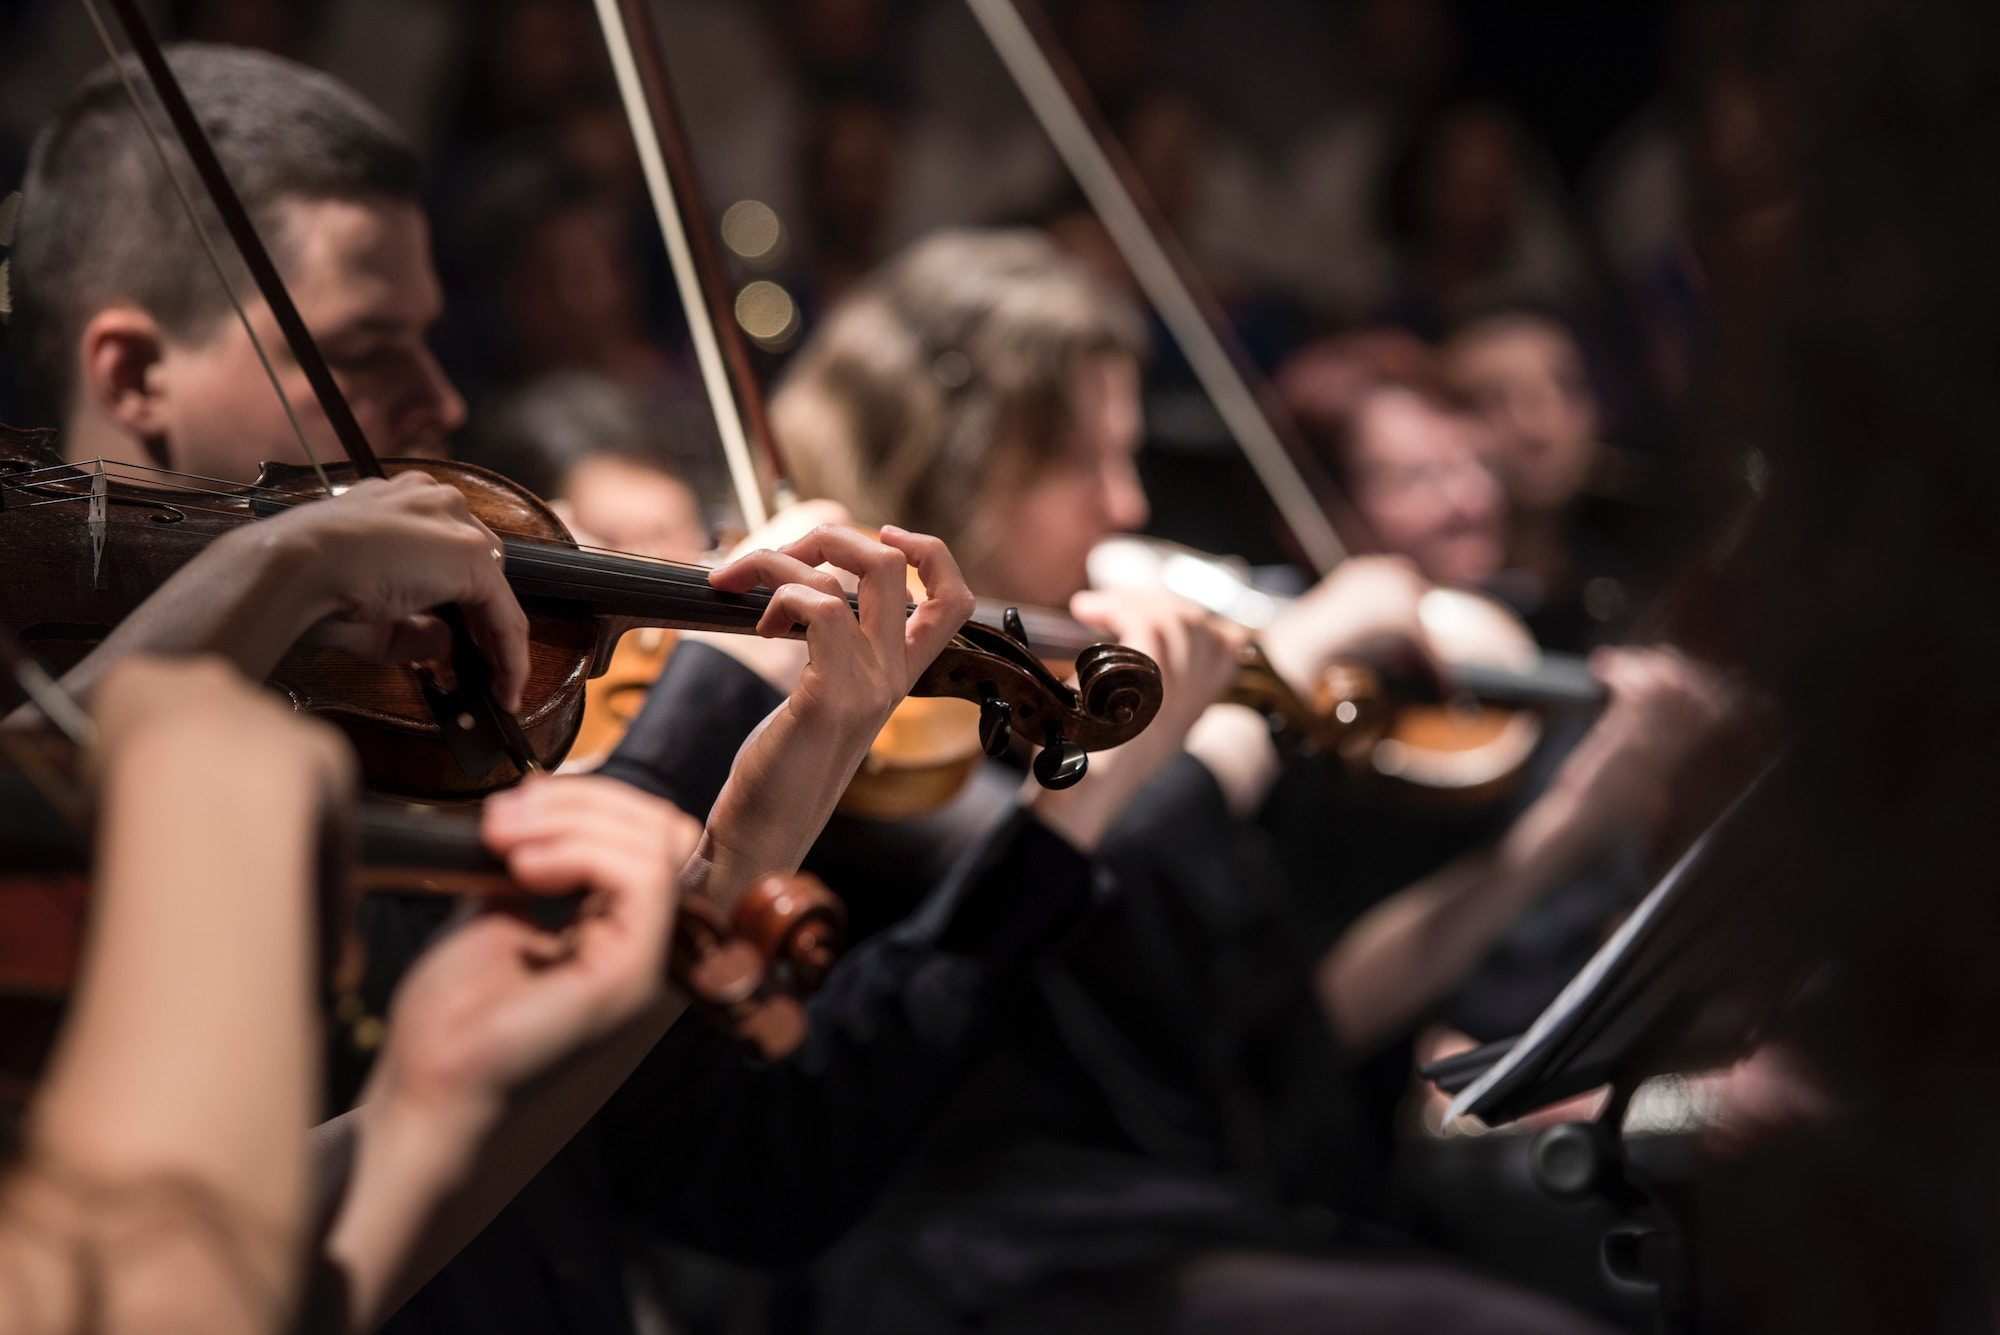 Top January events in Paris include seeing Vivaldi's 'Four Seasons' at the Madeleine Church, where the orchestra is made up of various talented musicians, including violinists.